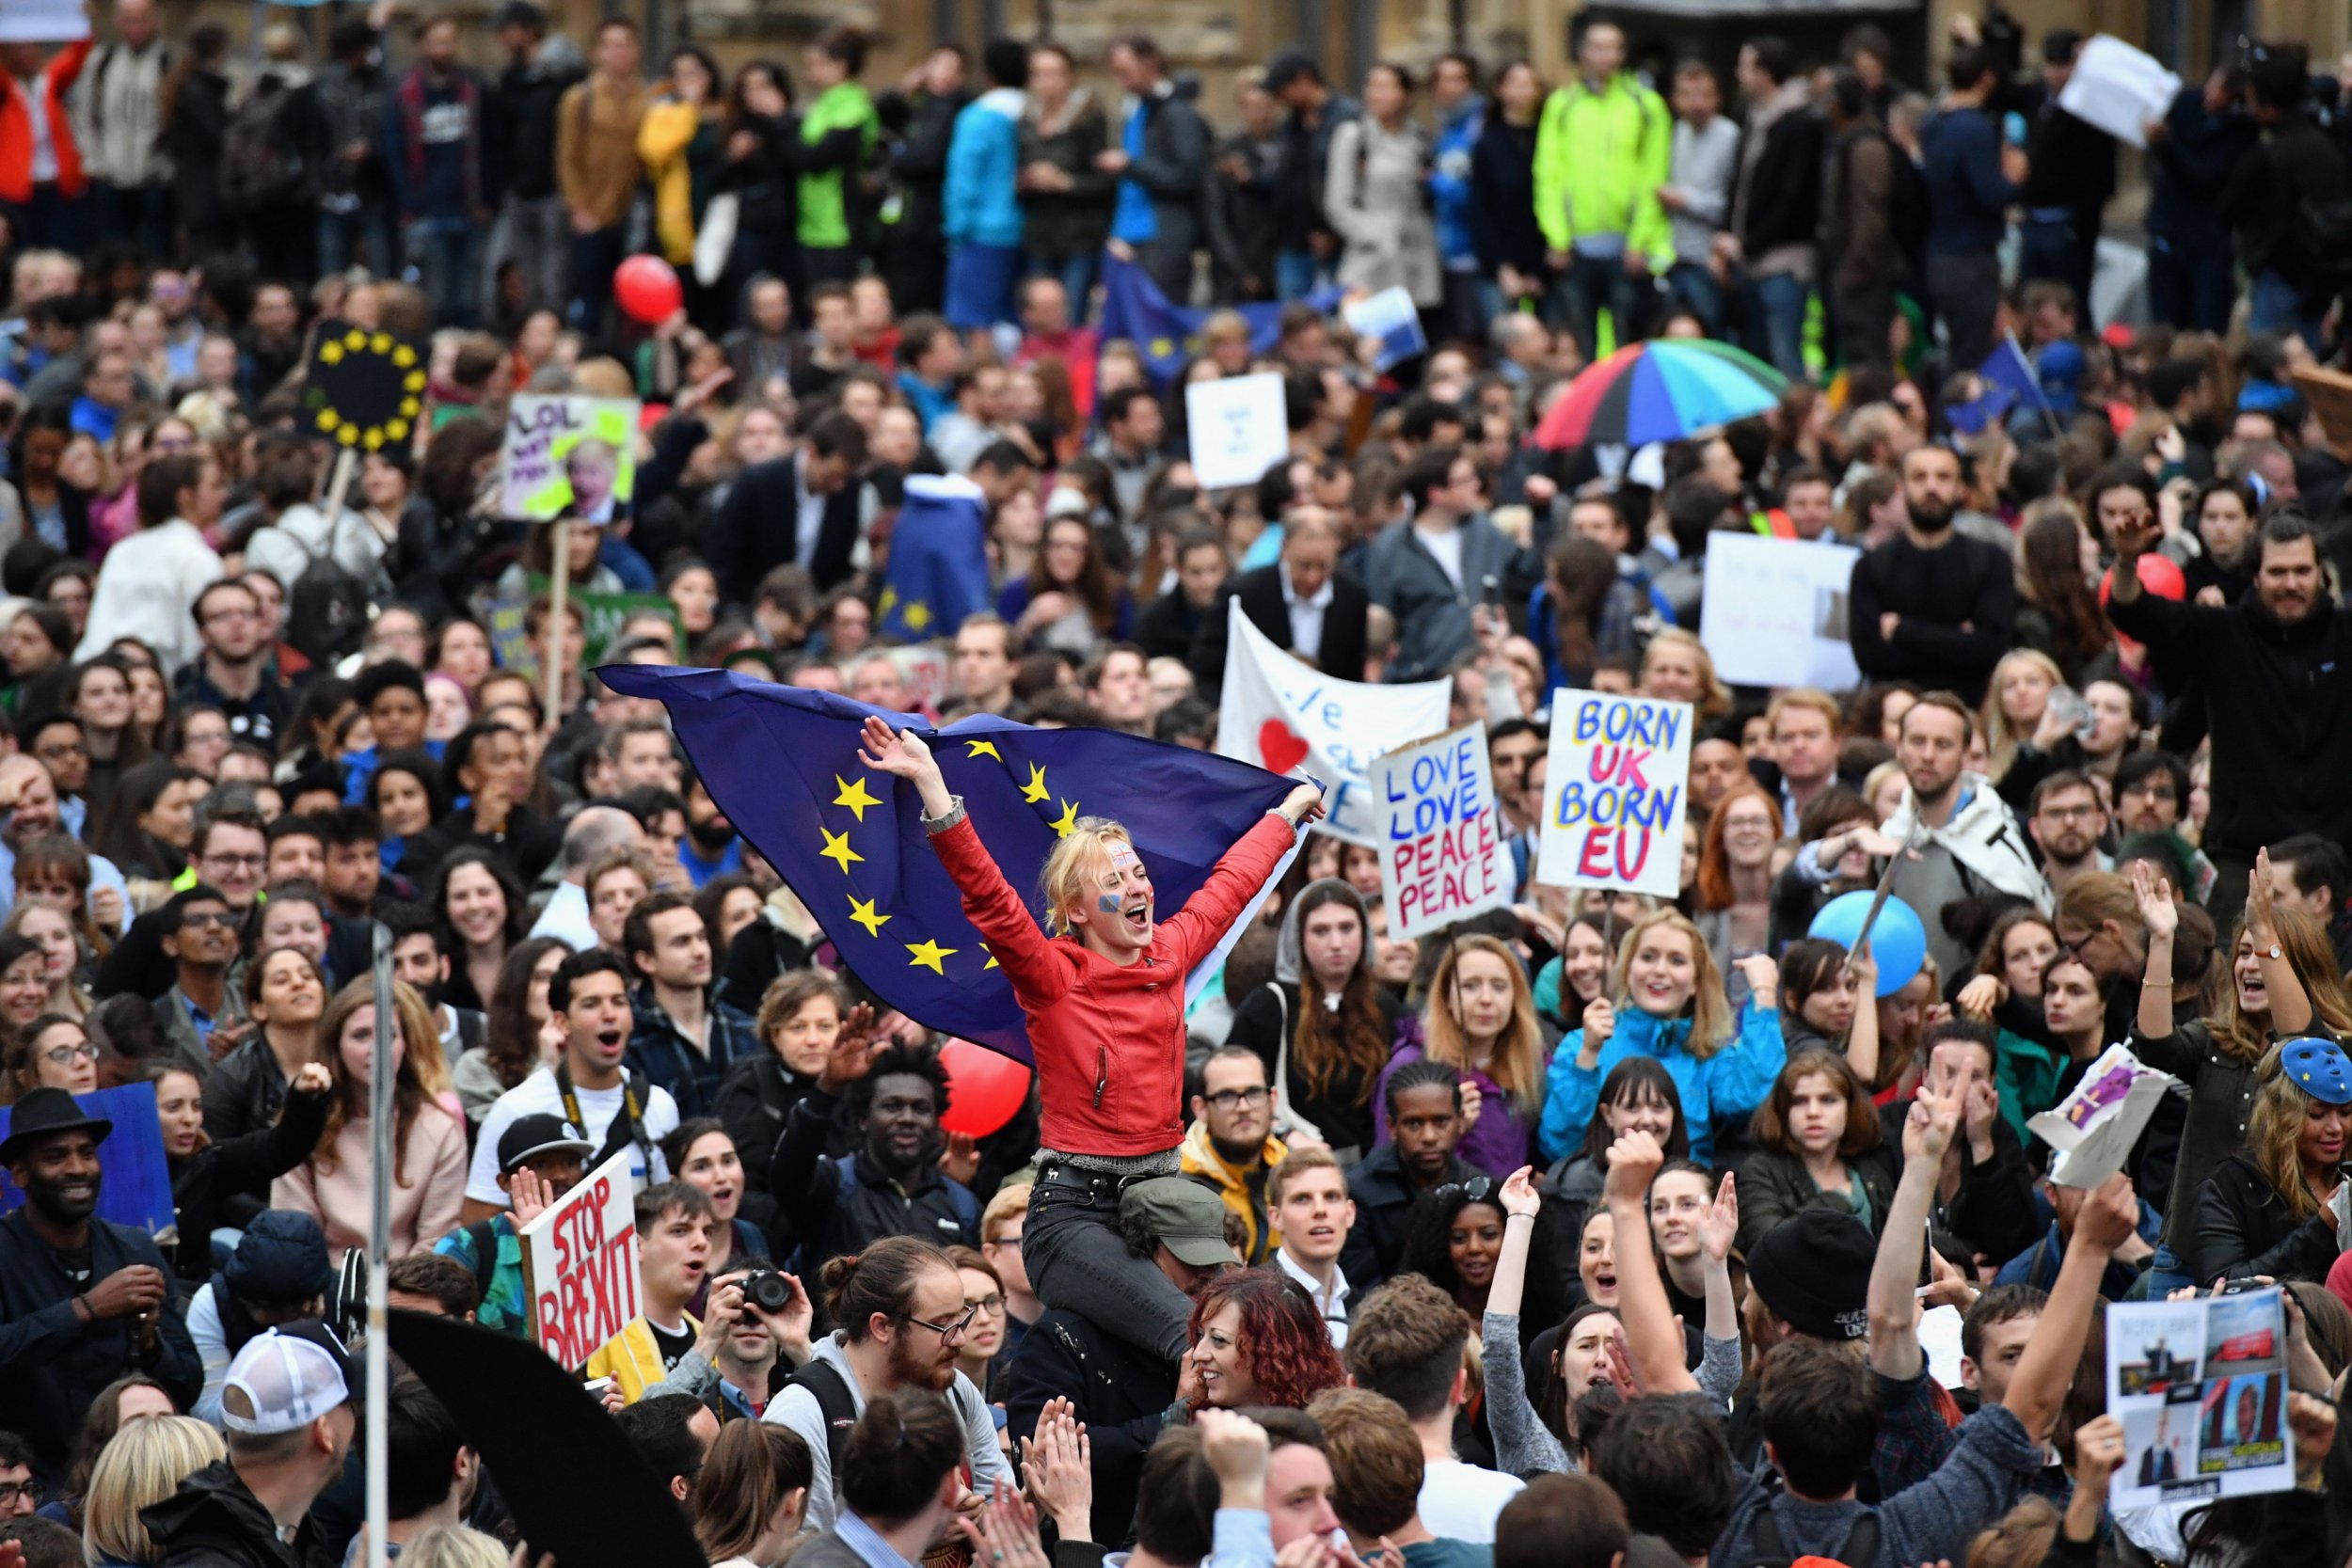 Protesters demonstrate against the EU referendum result